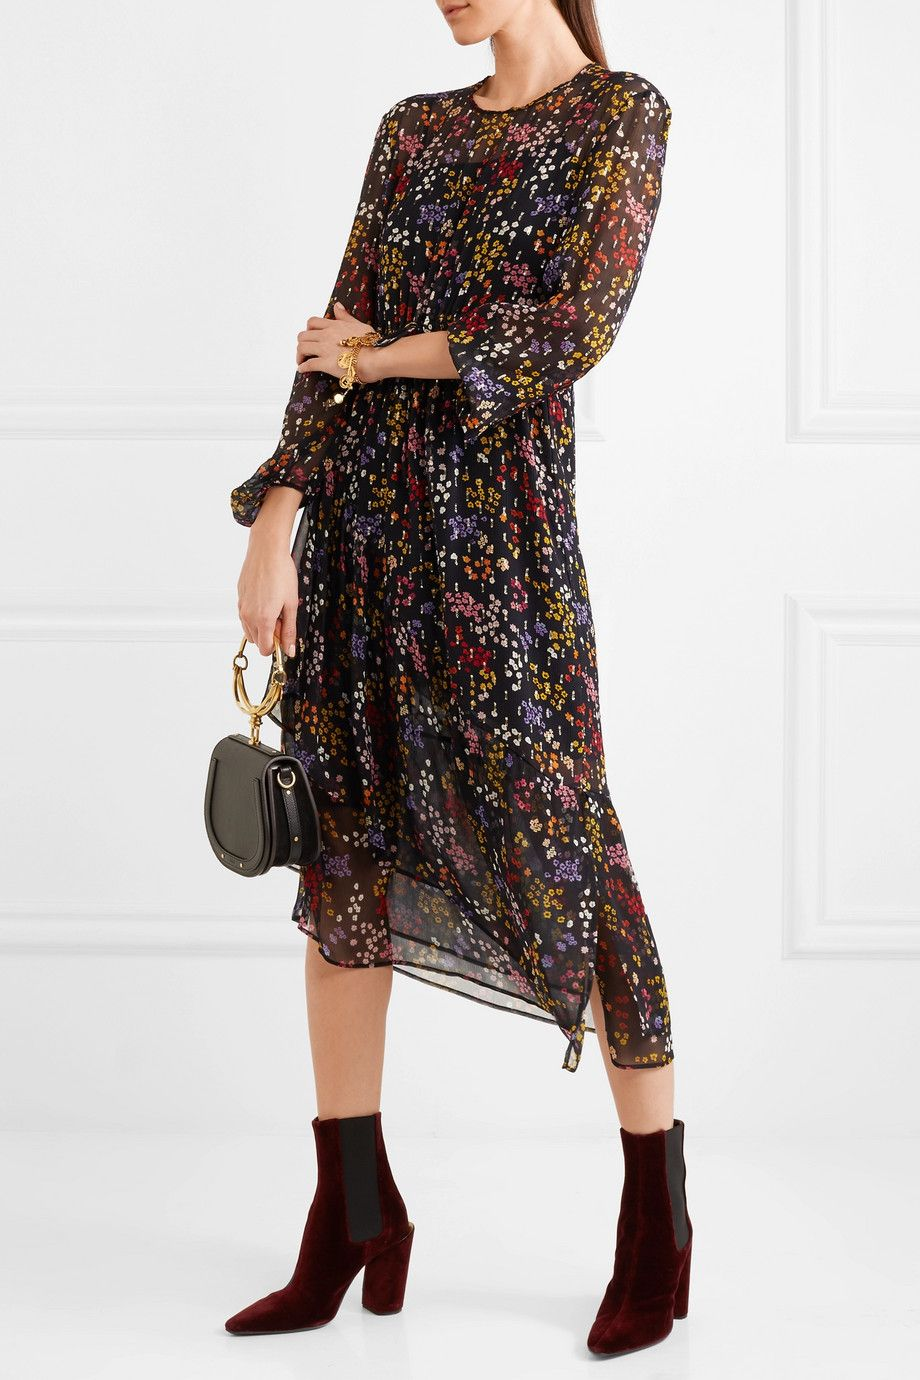 074921d74df14 See by Chloé | Floral-print fil coupé silk-georgette midi dress |  NET-A-PORTER.COM